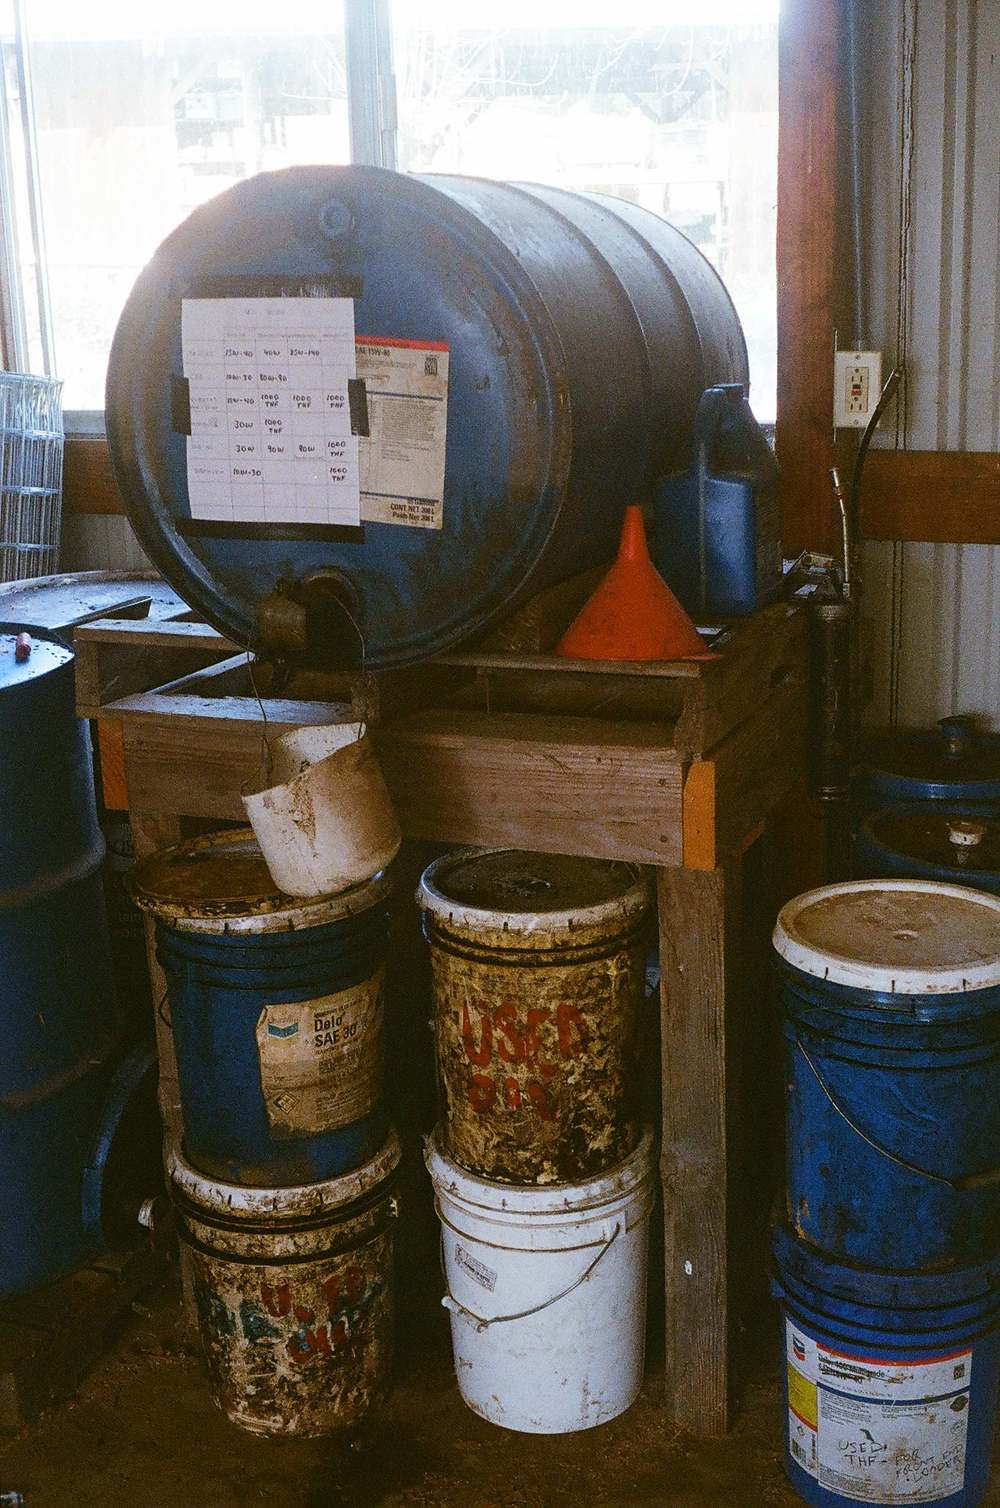 Motor oil is purchased in reusable drums rather than nonrecyclable plastic containers. These buckets on the floor hold used oil that is waiting for transport to a recycling facility.